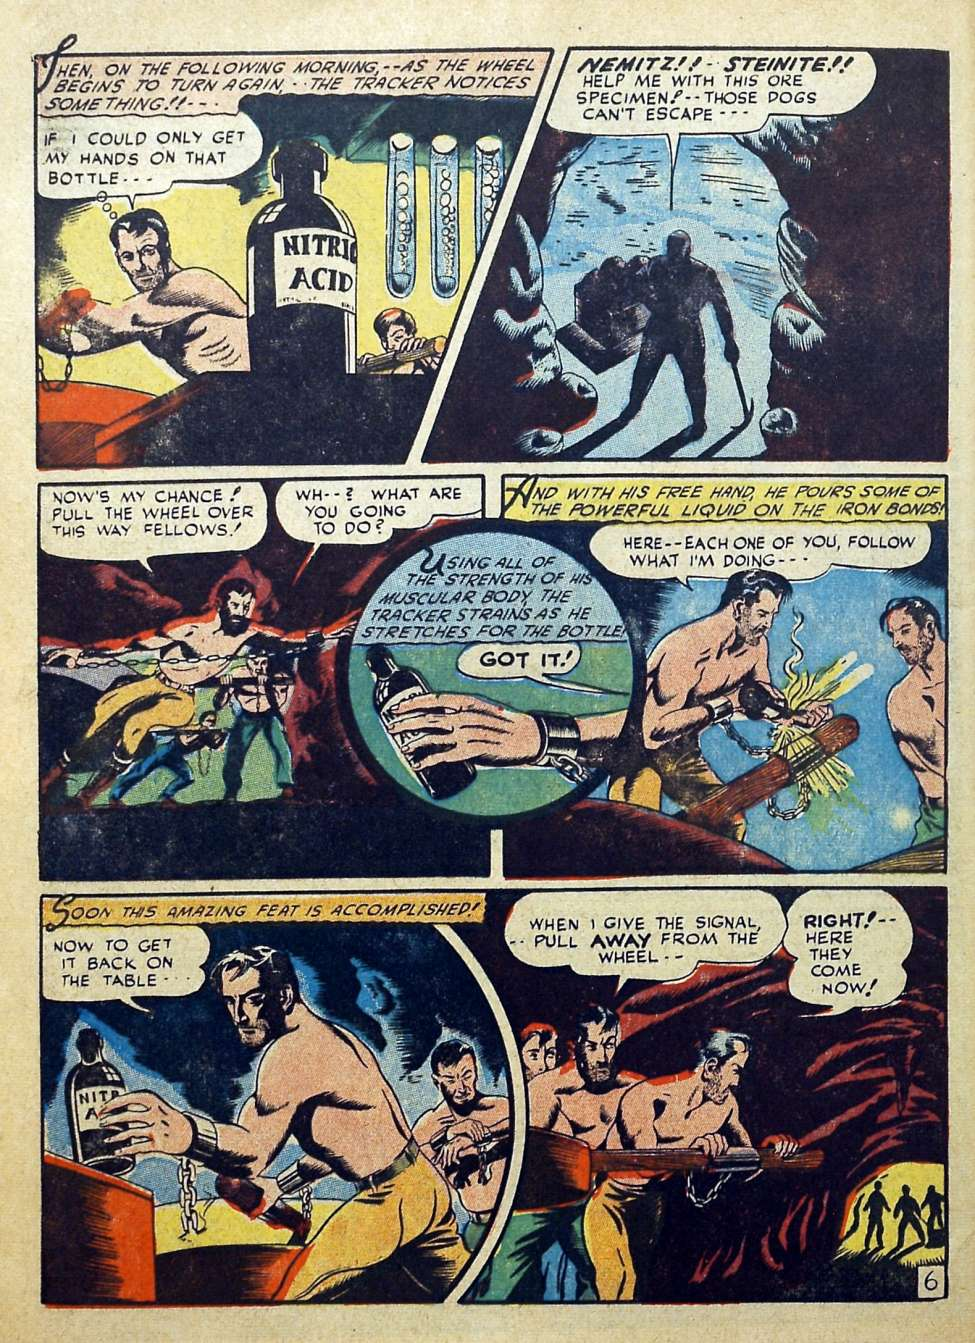 Suspense Comics #3 from 1944 50